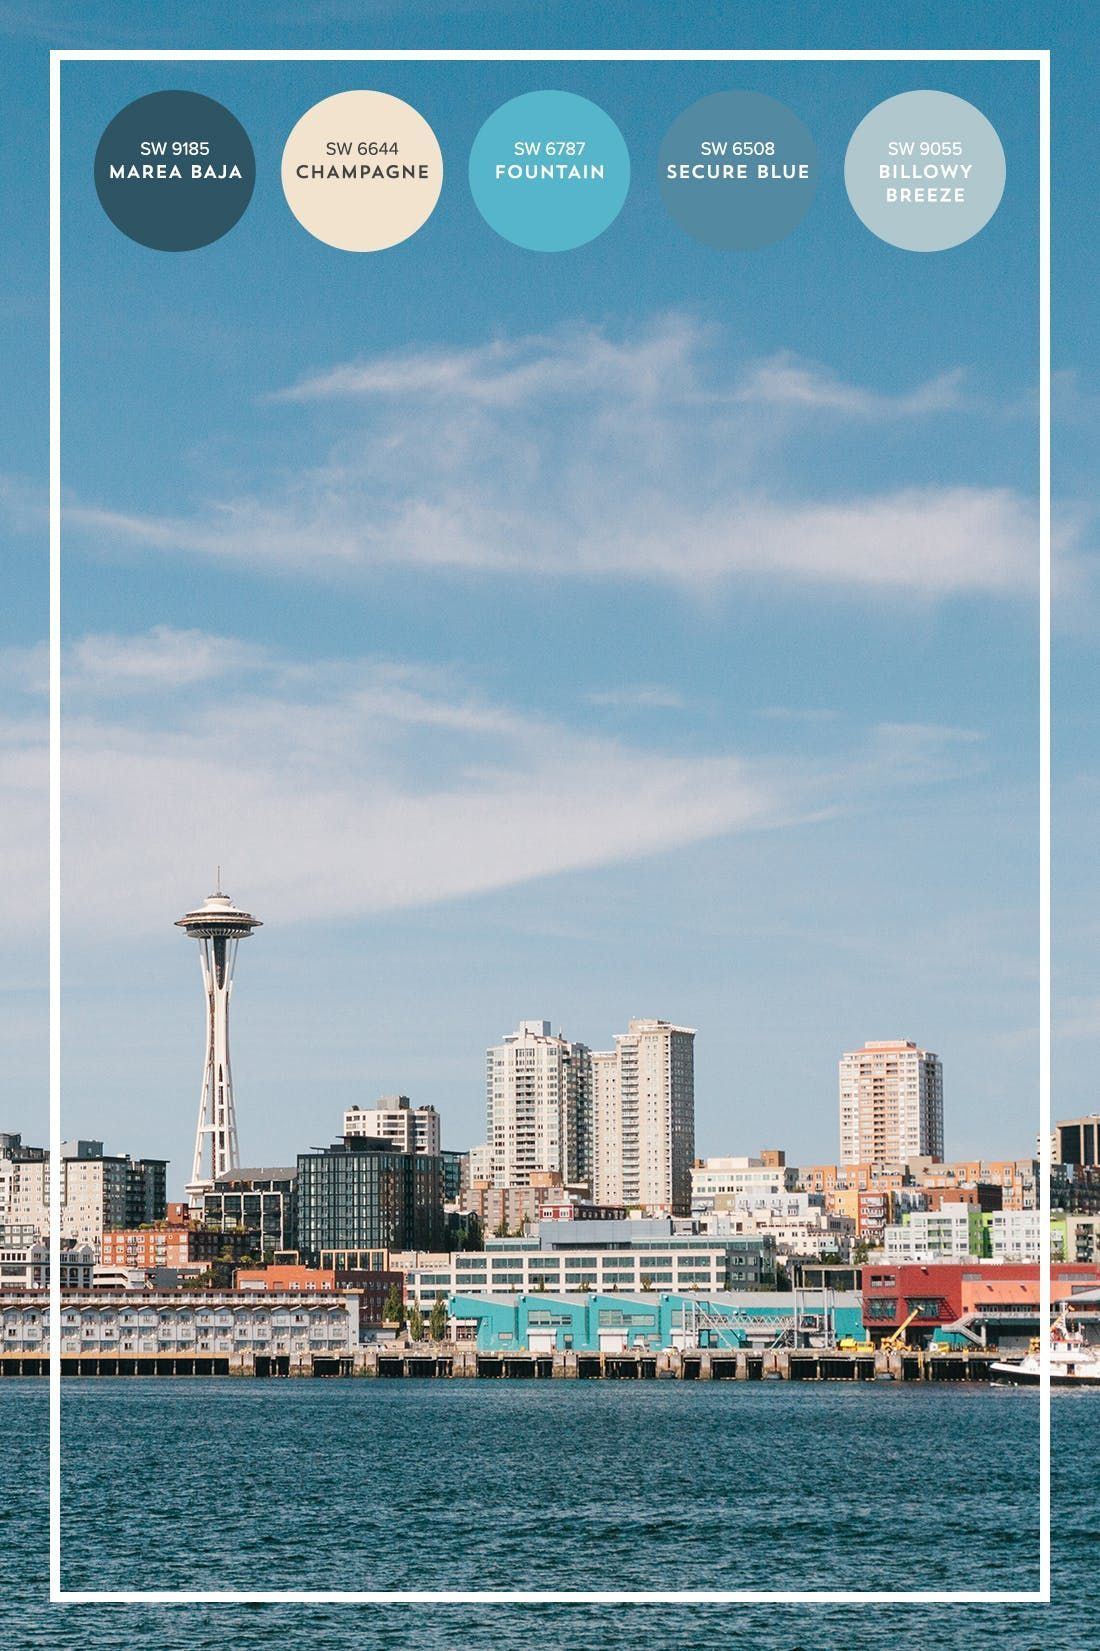 The Color Lover's Travel Guide to Seattle #cityloftsherwinwilliams We've rounded up a Seattle-inspired color palette, from ocean blues, grays + off white, to make sure your home is filled with colorful inspo. #ad #cityloftsherwinwilliams